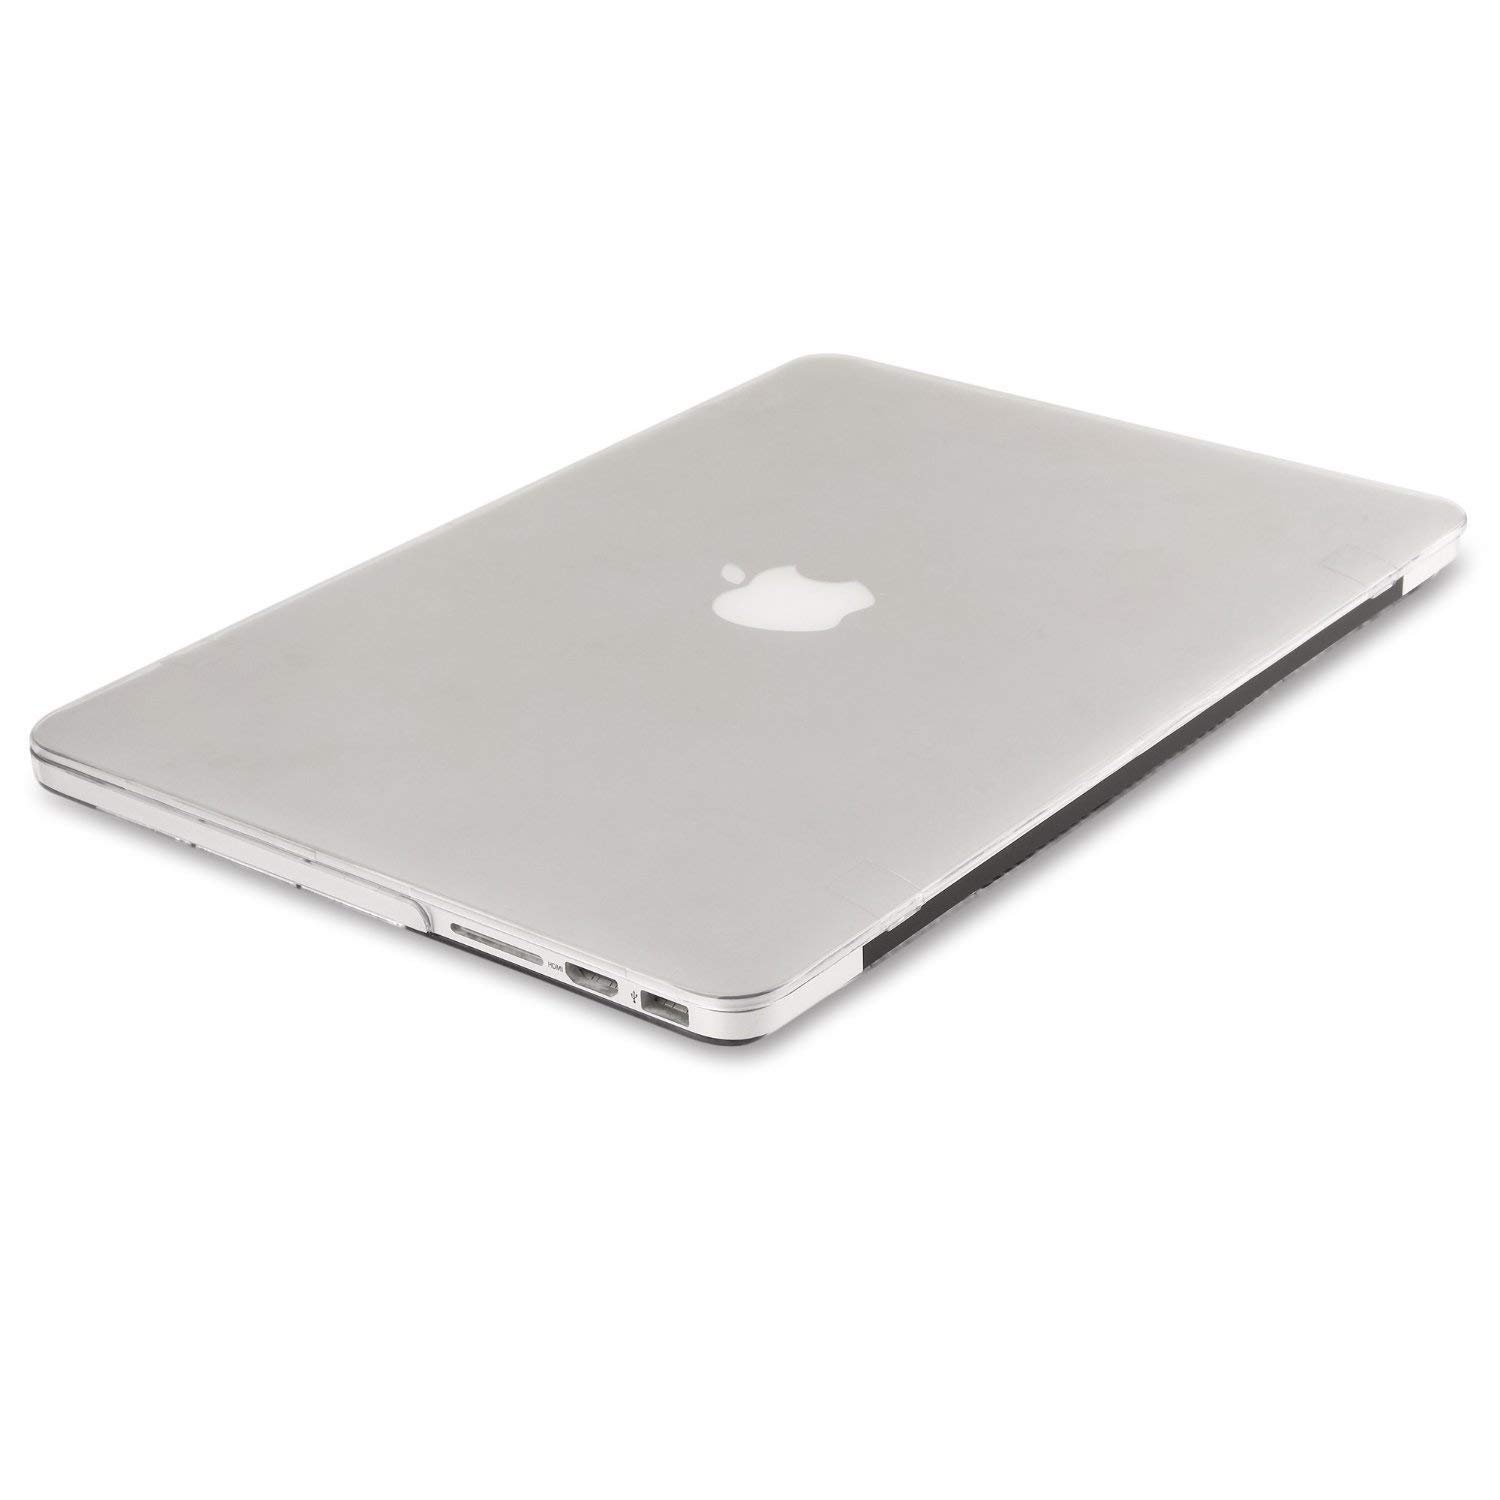 MOSISO Plastic Hard Shell Case with Keyboard Cover Compatible MacBook Air 11 Inch (Models: A1370 and A1465),Crystal Clear by MOSISO (Image #6)